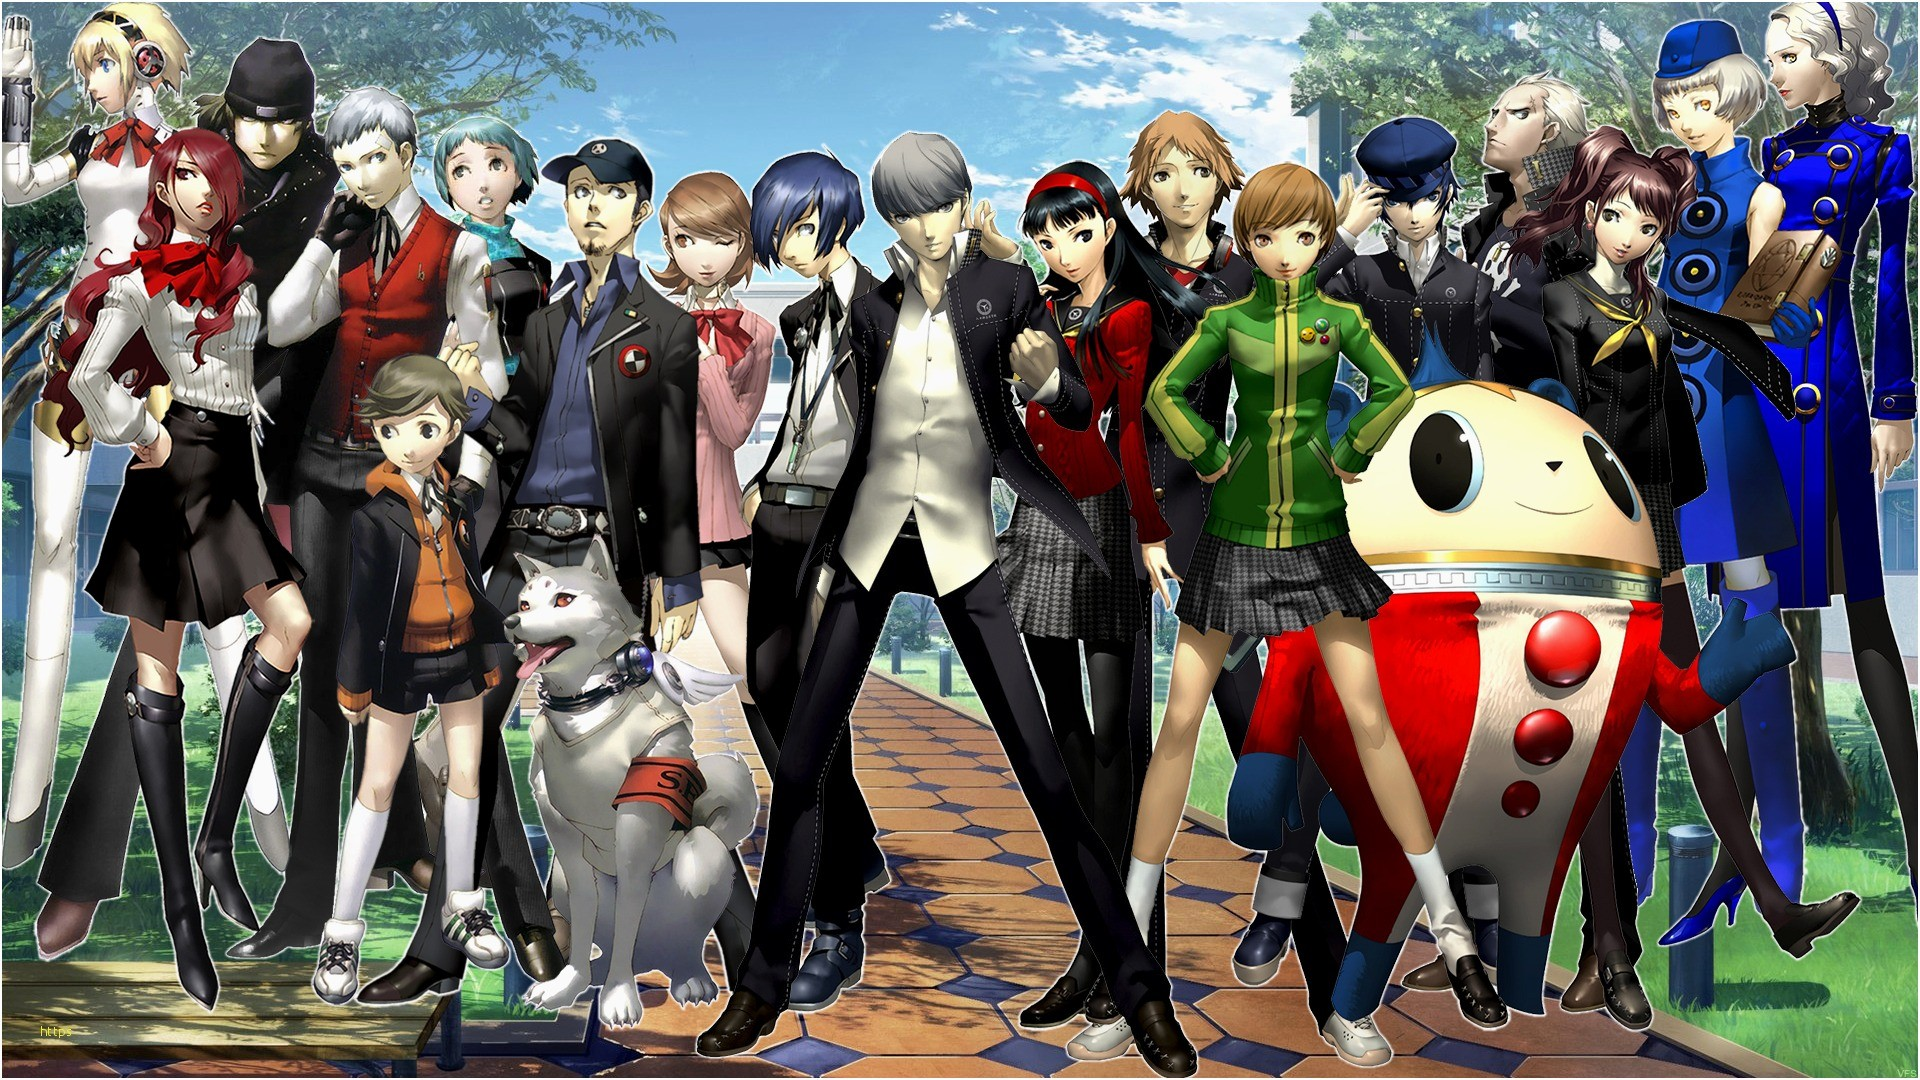 Res: 1920x1080, Persona 3 Wallpaper Unique Persona 3 4 Wallpaper by Vahnfannel On Deviantart